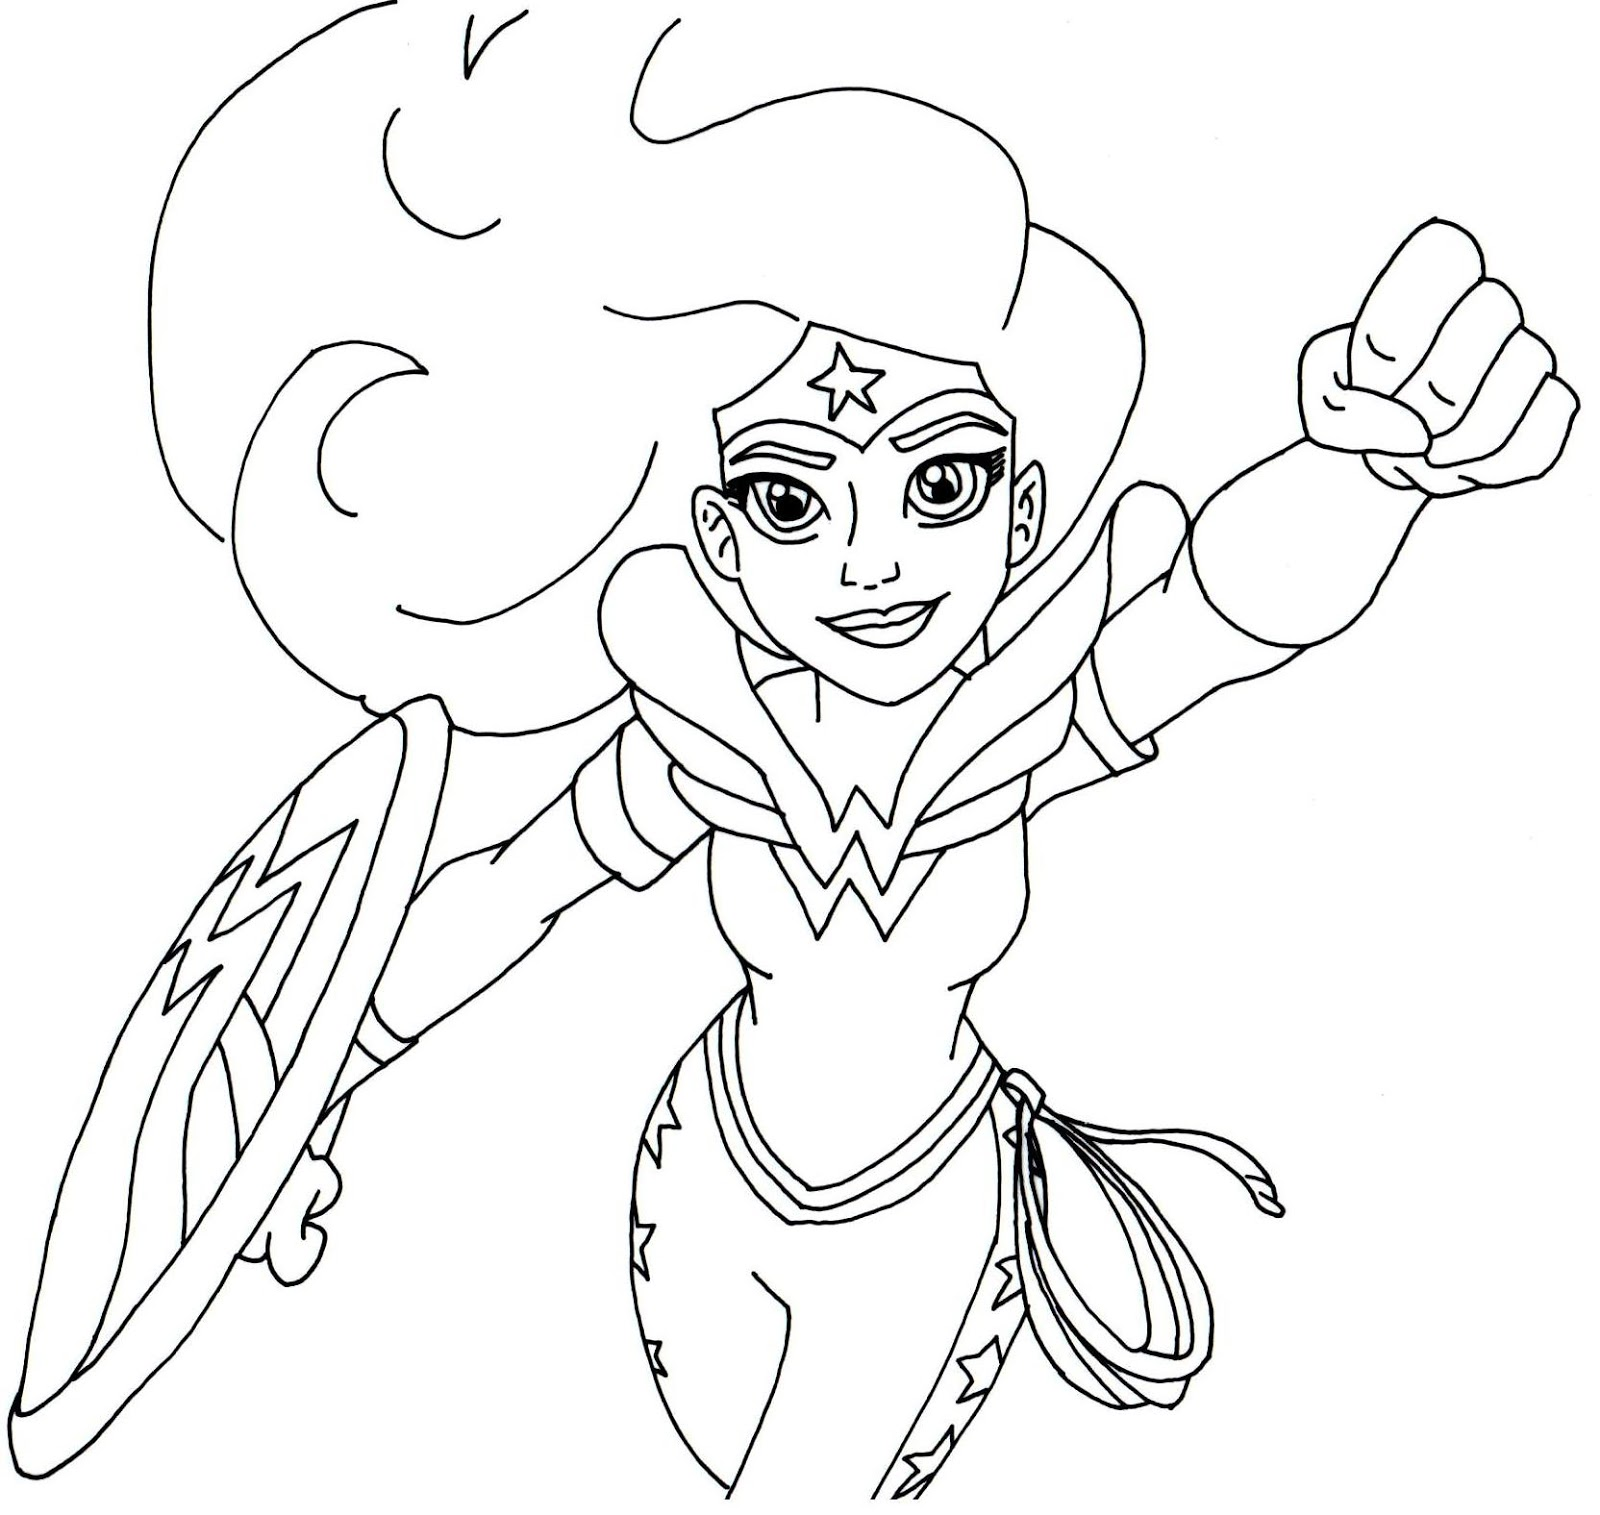 wonder woman coloring pages - photo#5